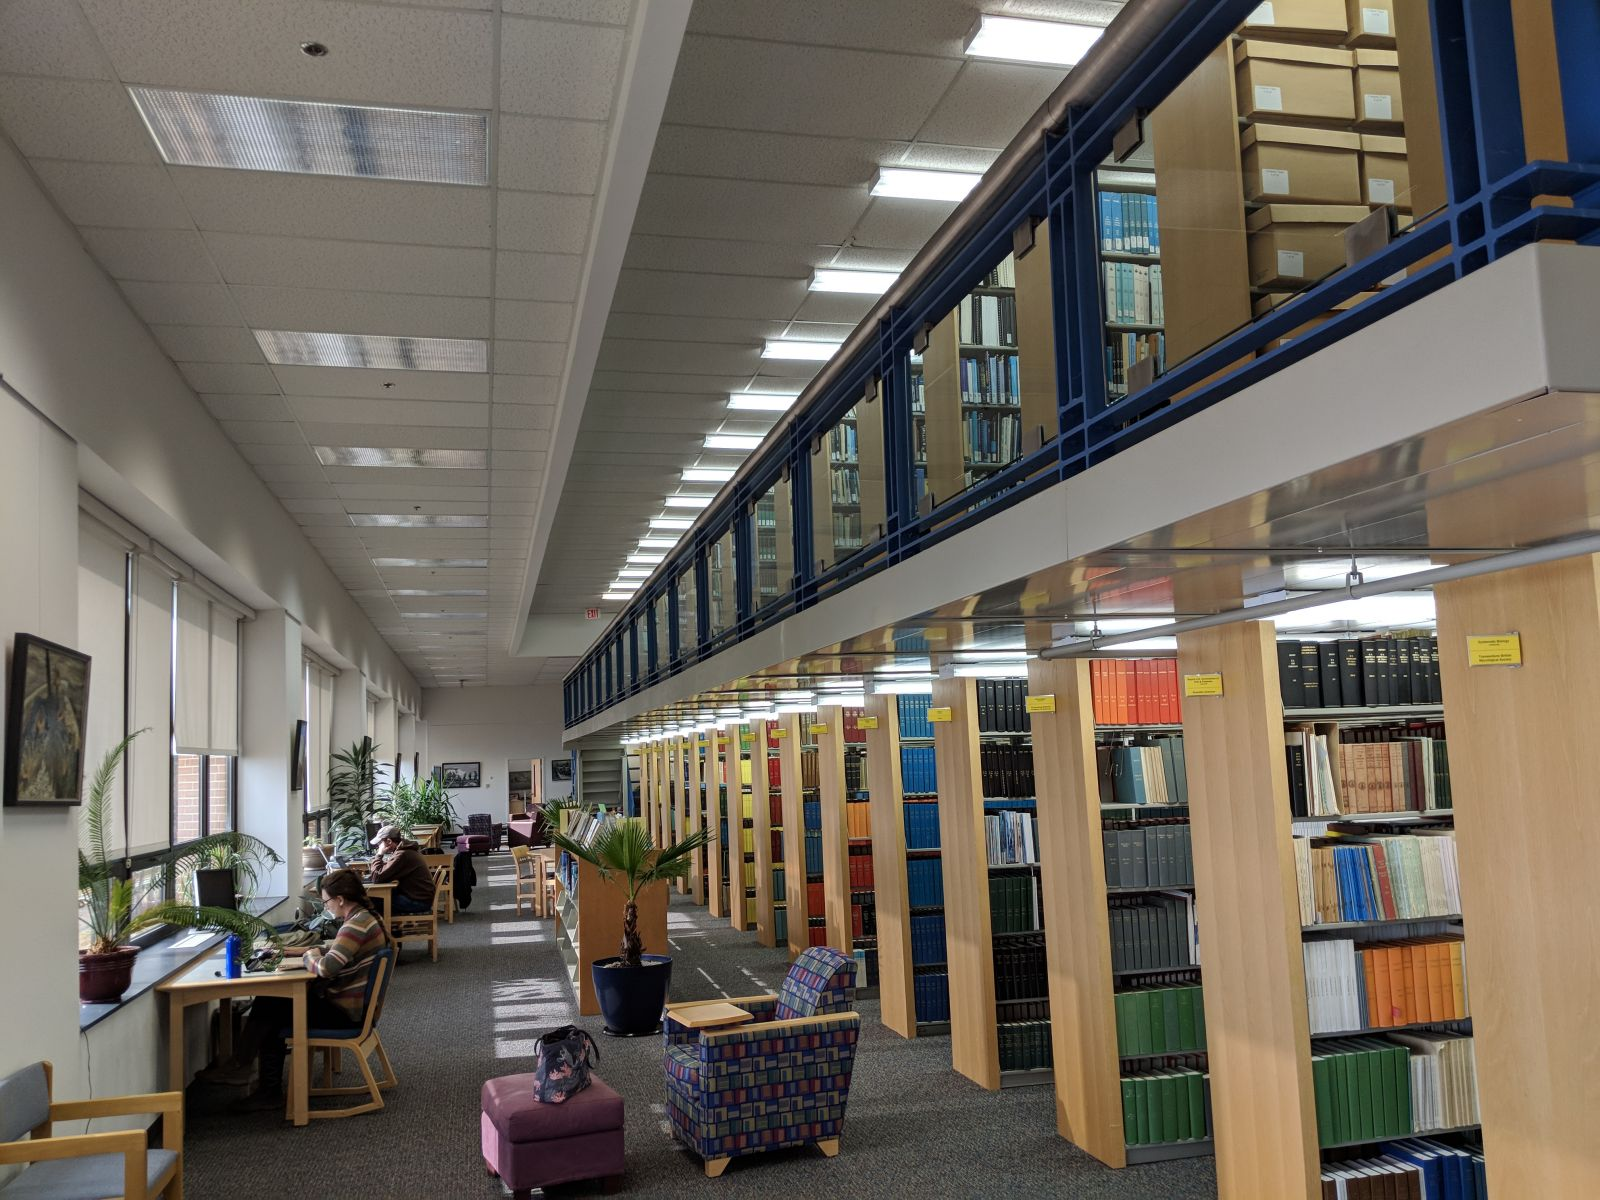 Interior of Hargis Library at VIMS with the stacks and seating.